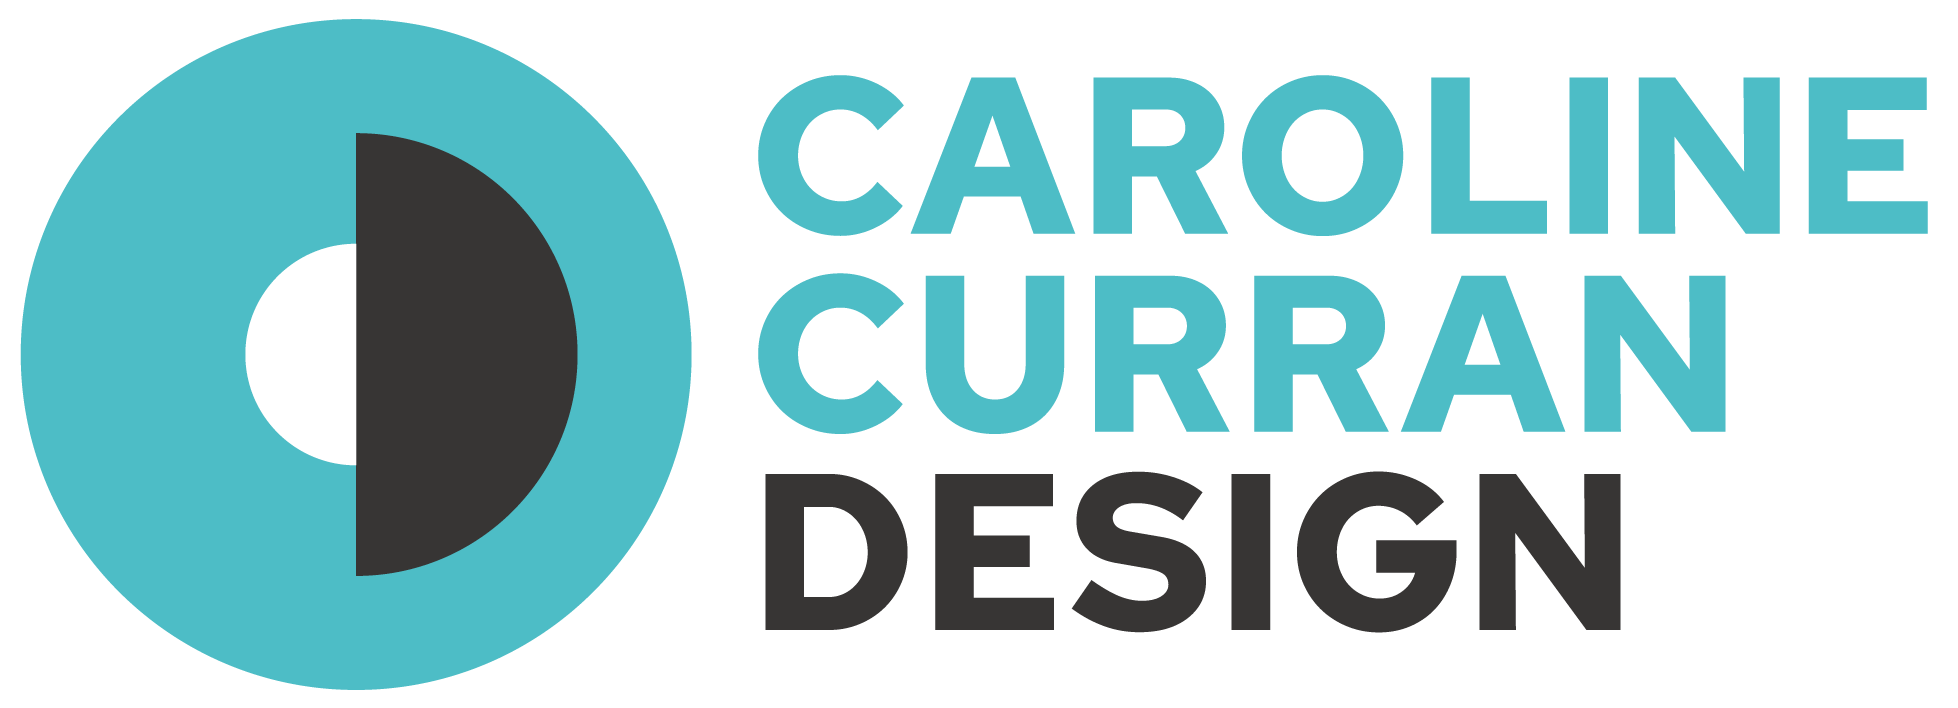 Caroline Curran Design